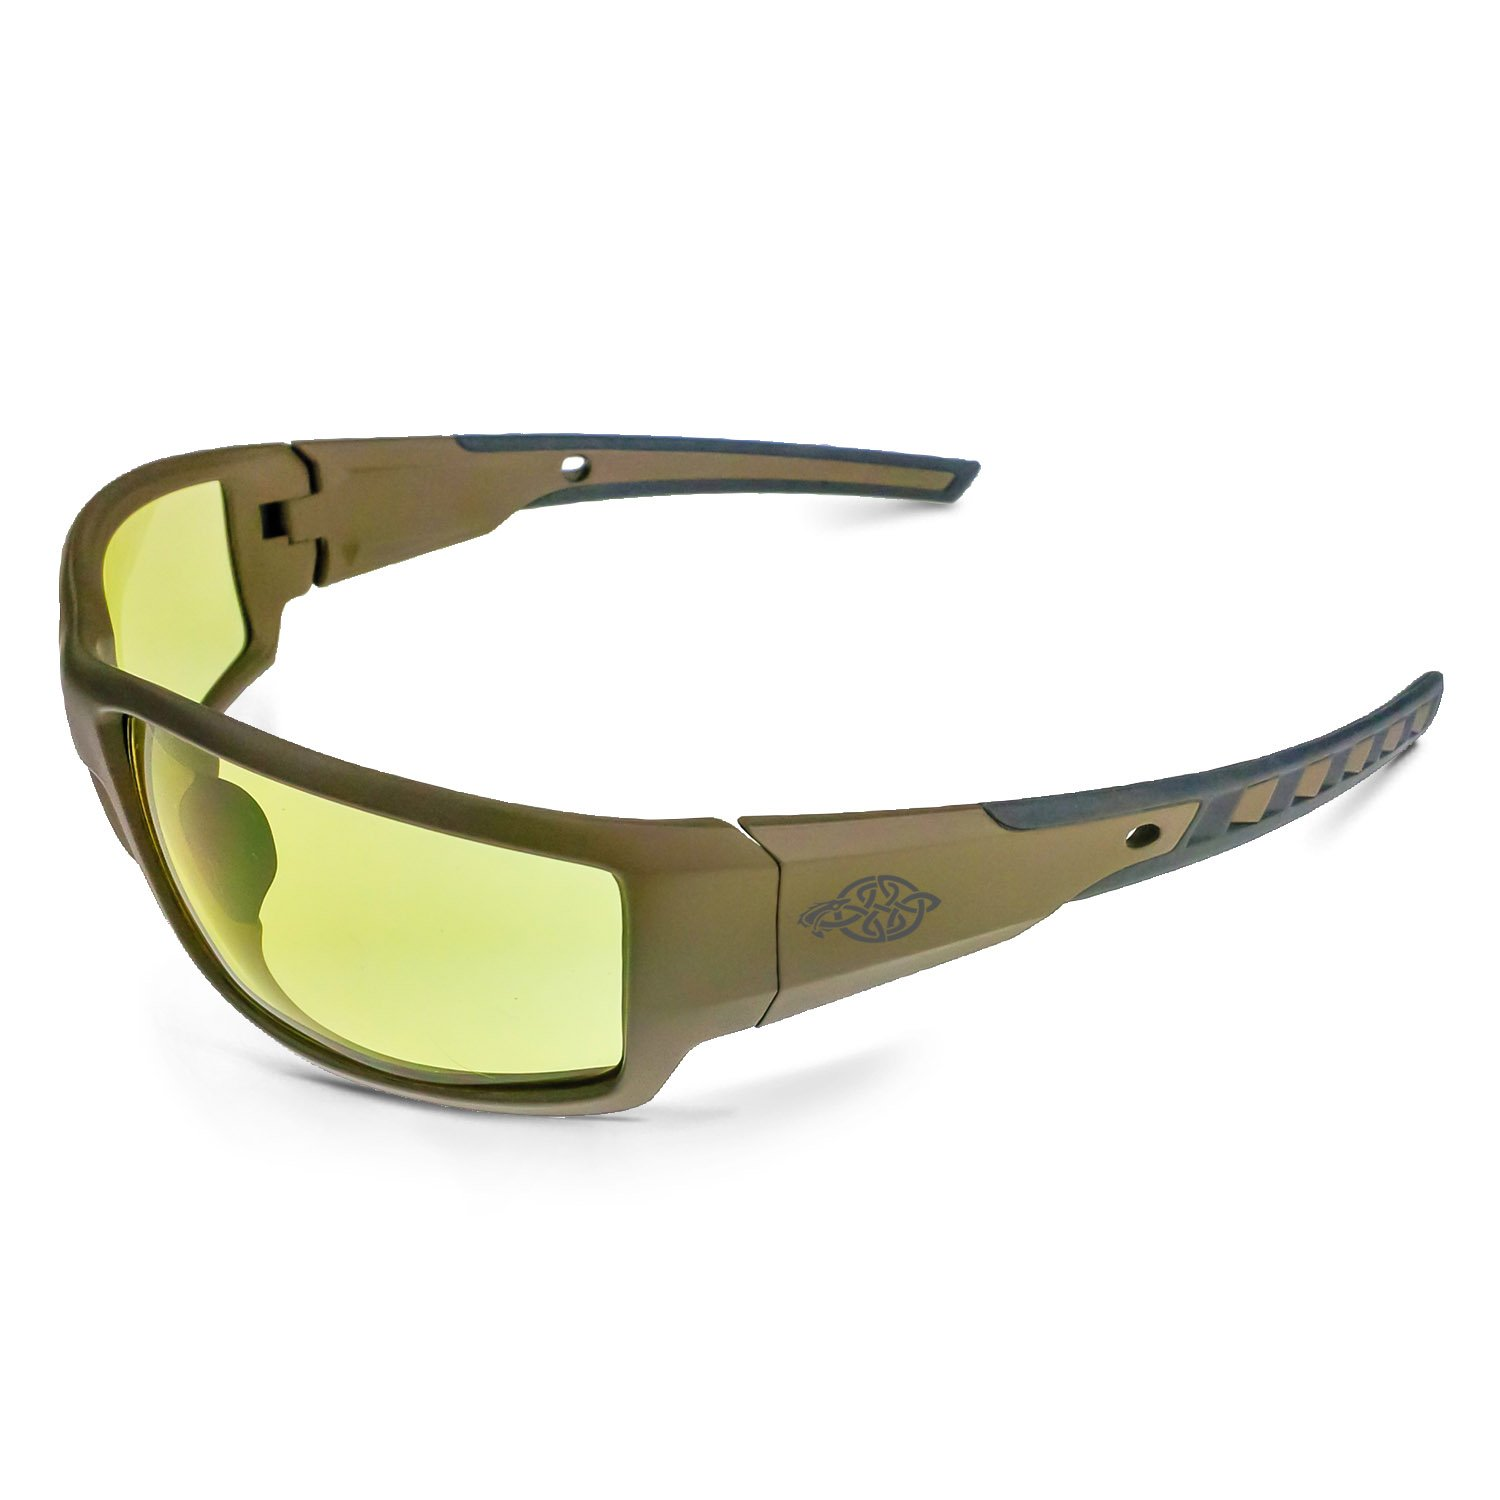 Crossfire Eyewear 41285 Cumulus Safety Glasses with HD Yellow Lens & Aluminum Gray Frame,